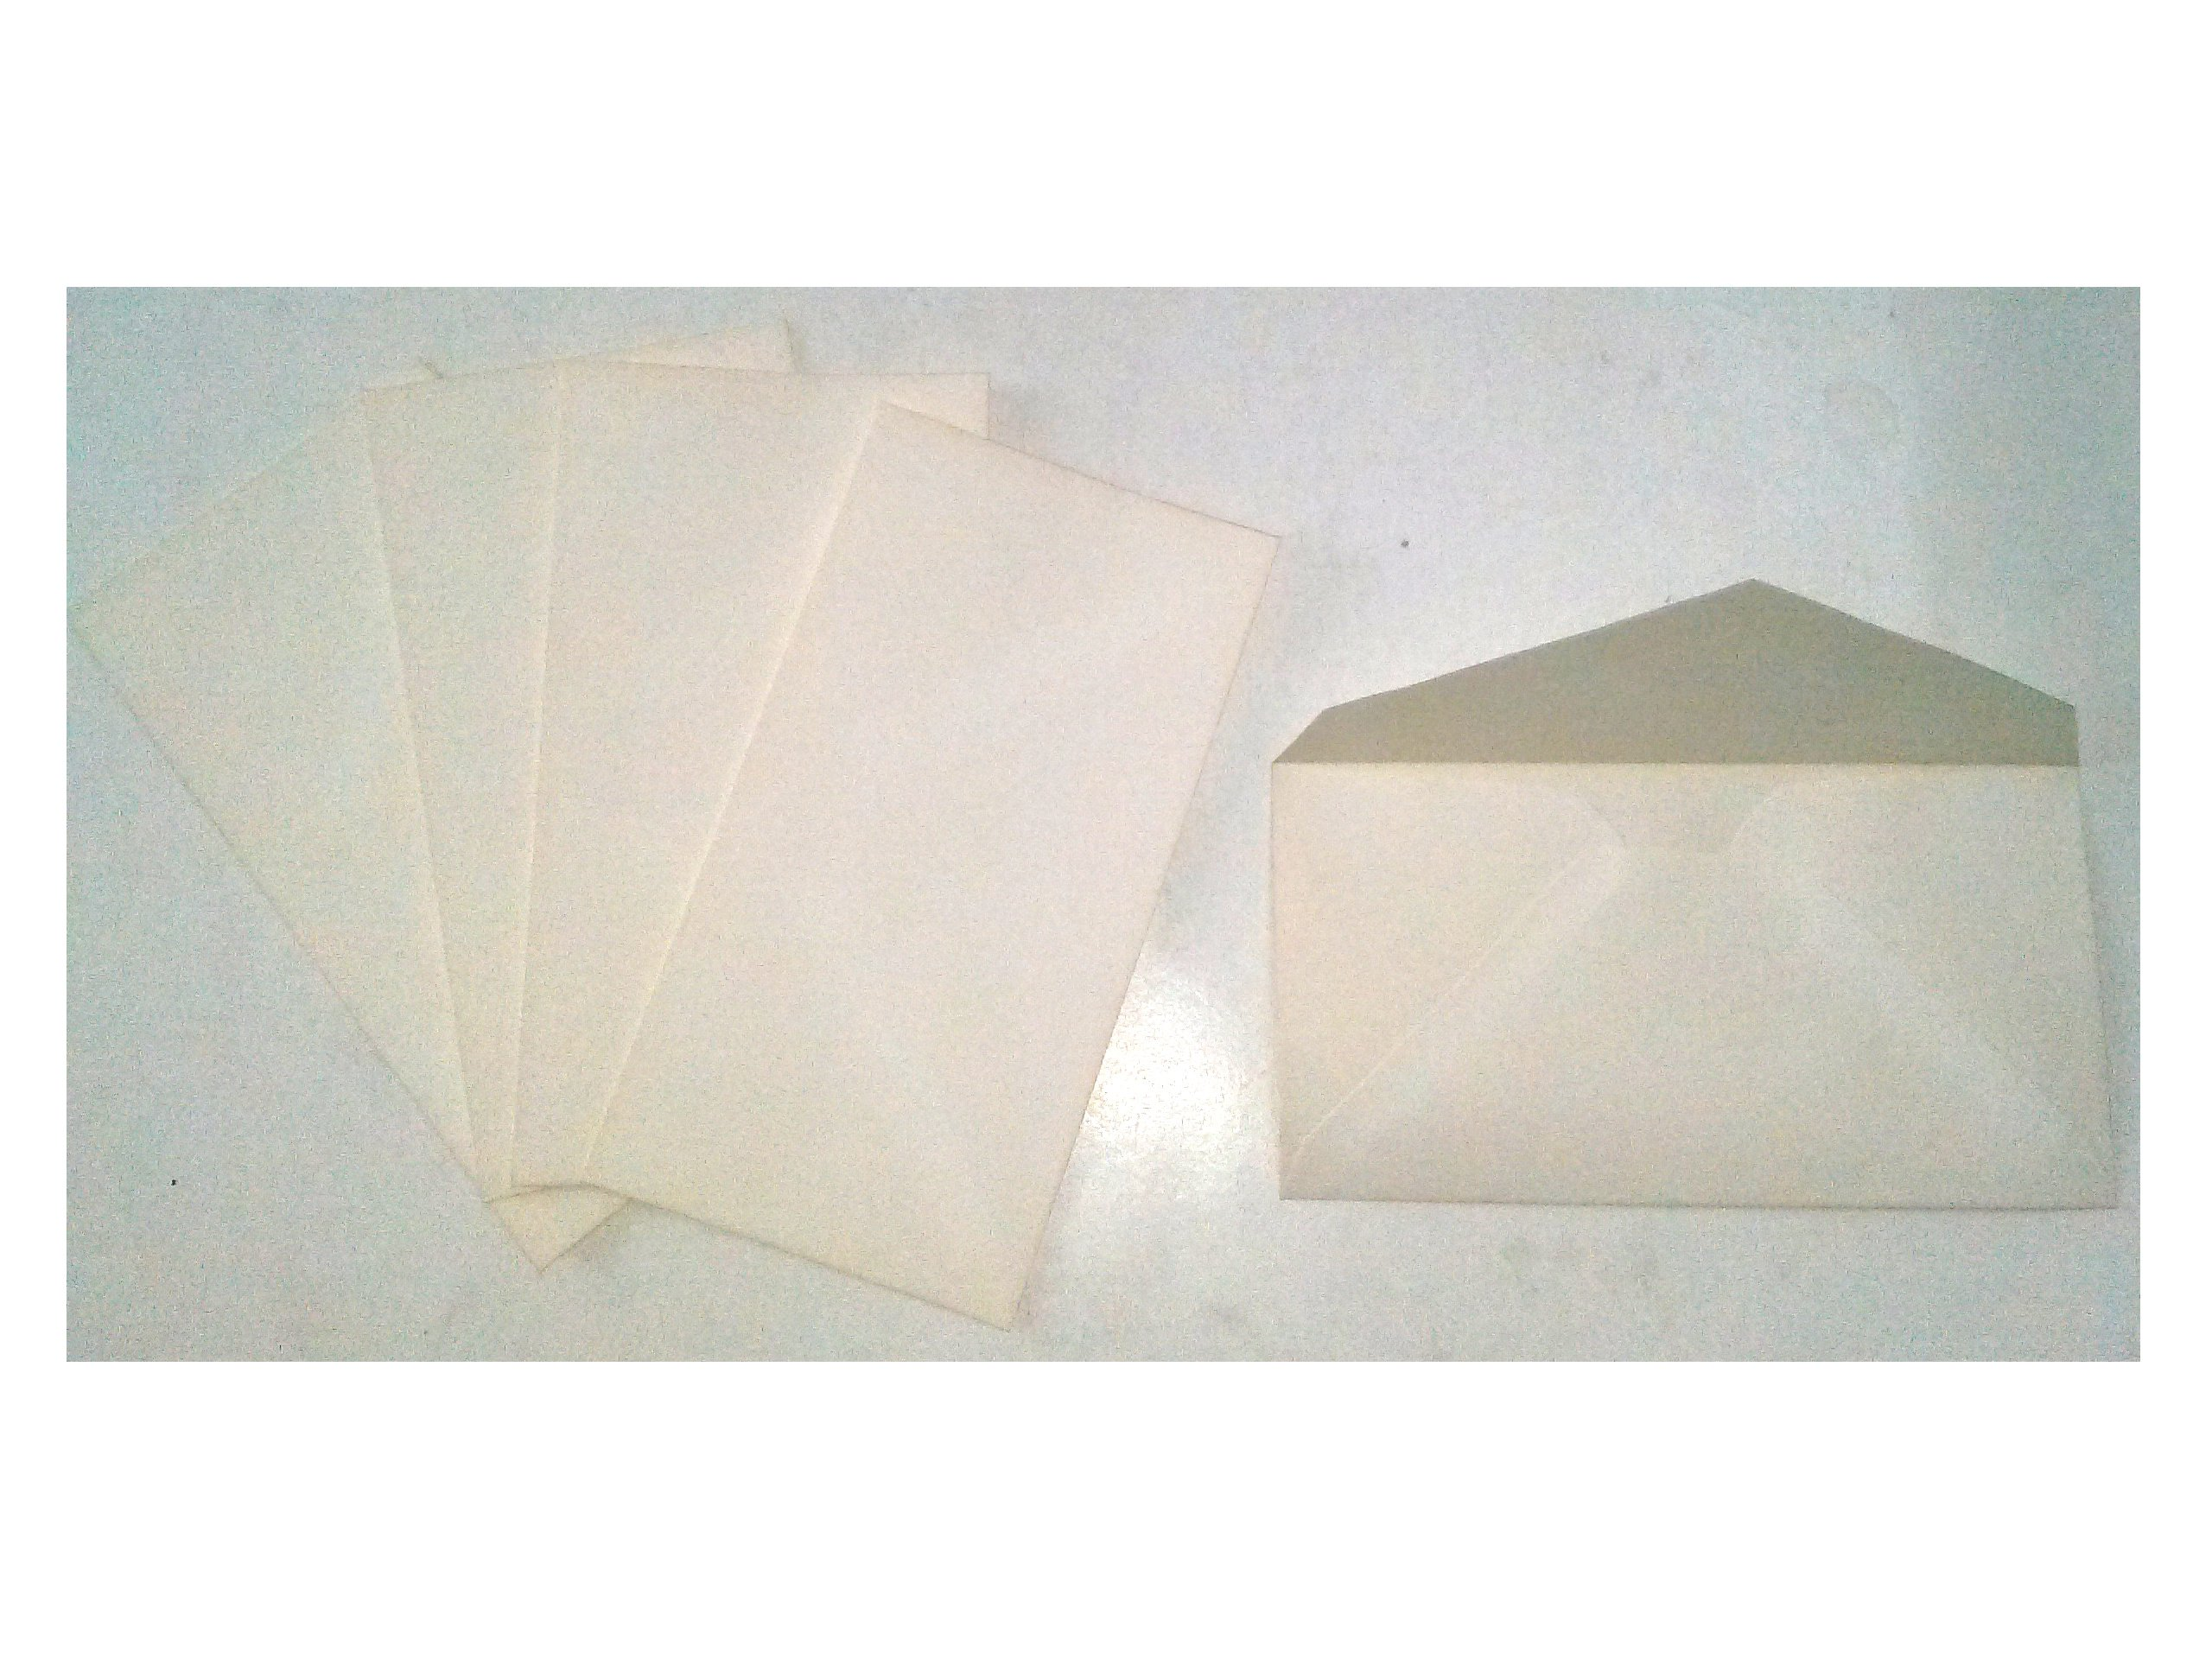 Crane's E24S Monarch Envelopes Distaff Linen Sub 24 100% Cotton Rag White Wove Sold in Bulk Packages of 25 Envelopes